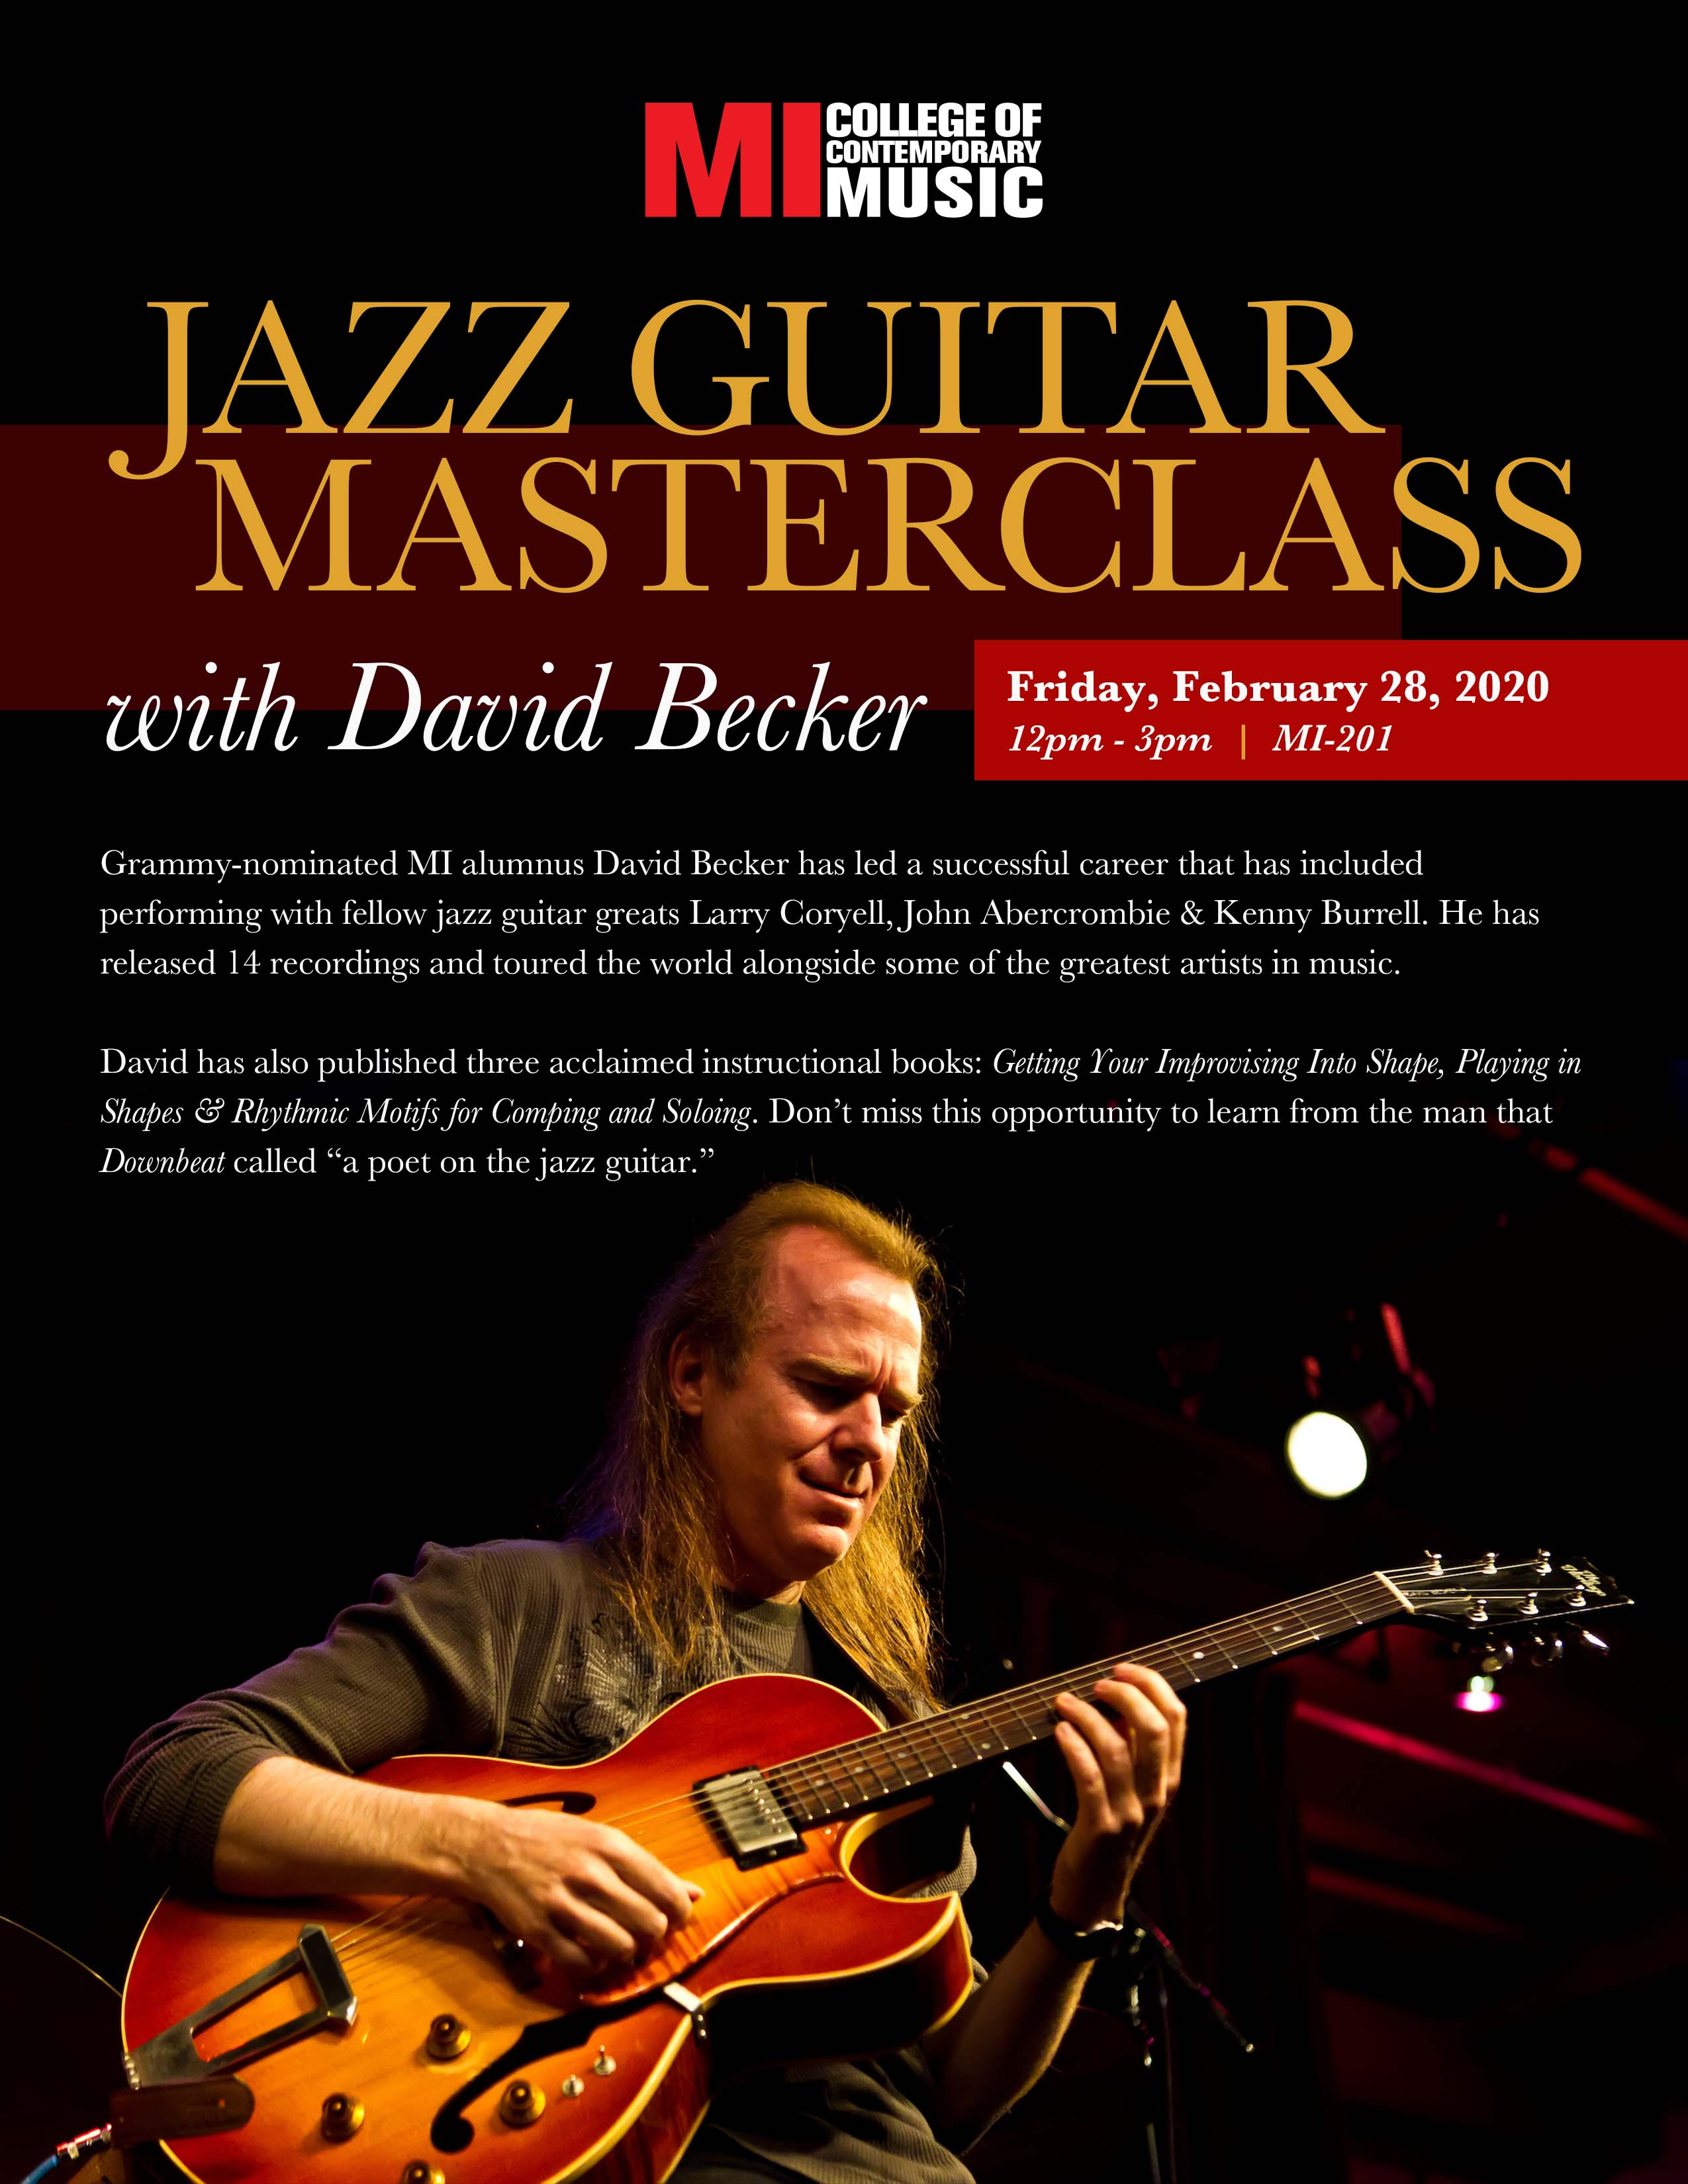 Jazz Guitar Masterclass with David BeckerFRIDAY, FEBRUARY 28, 2020, 12 – 3PM